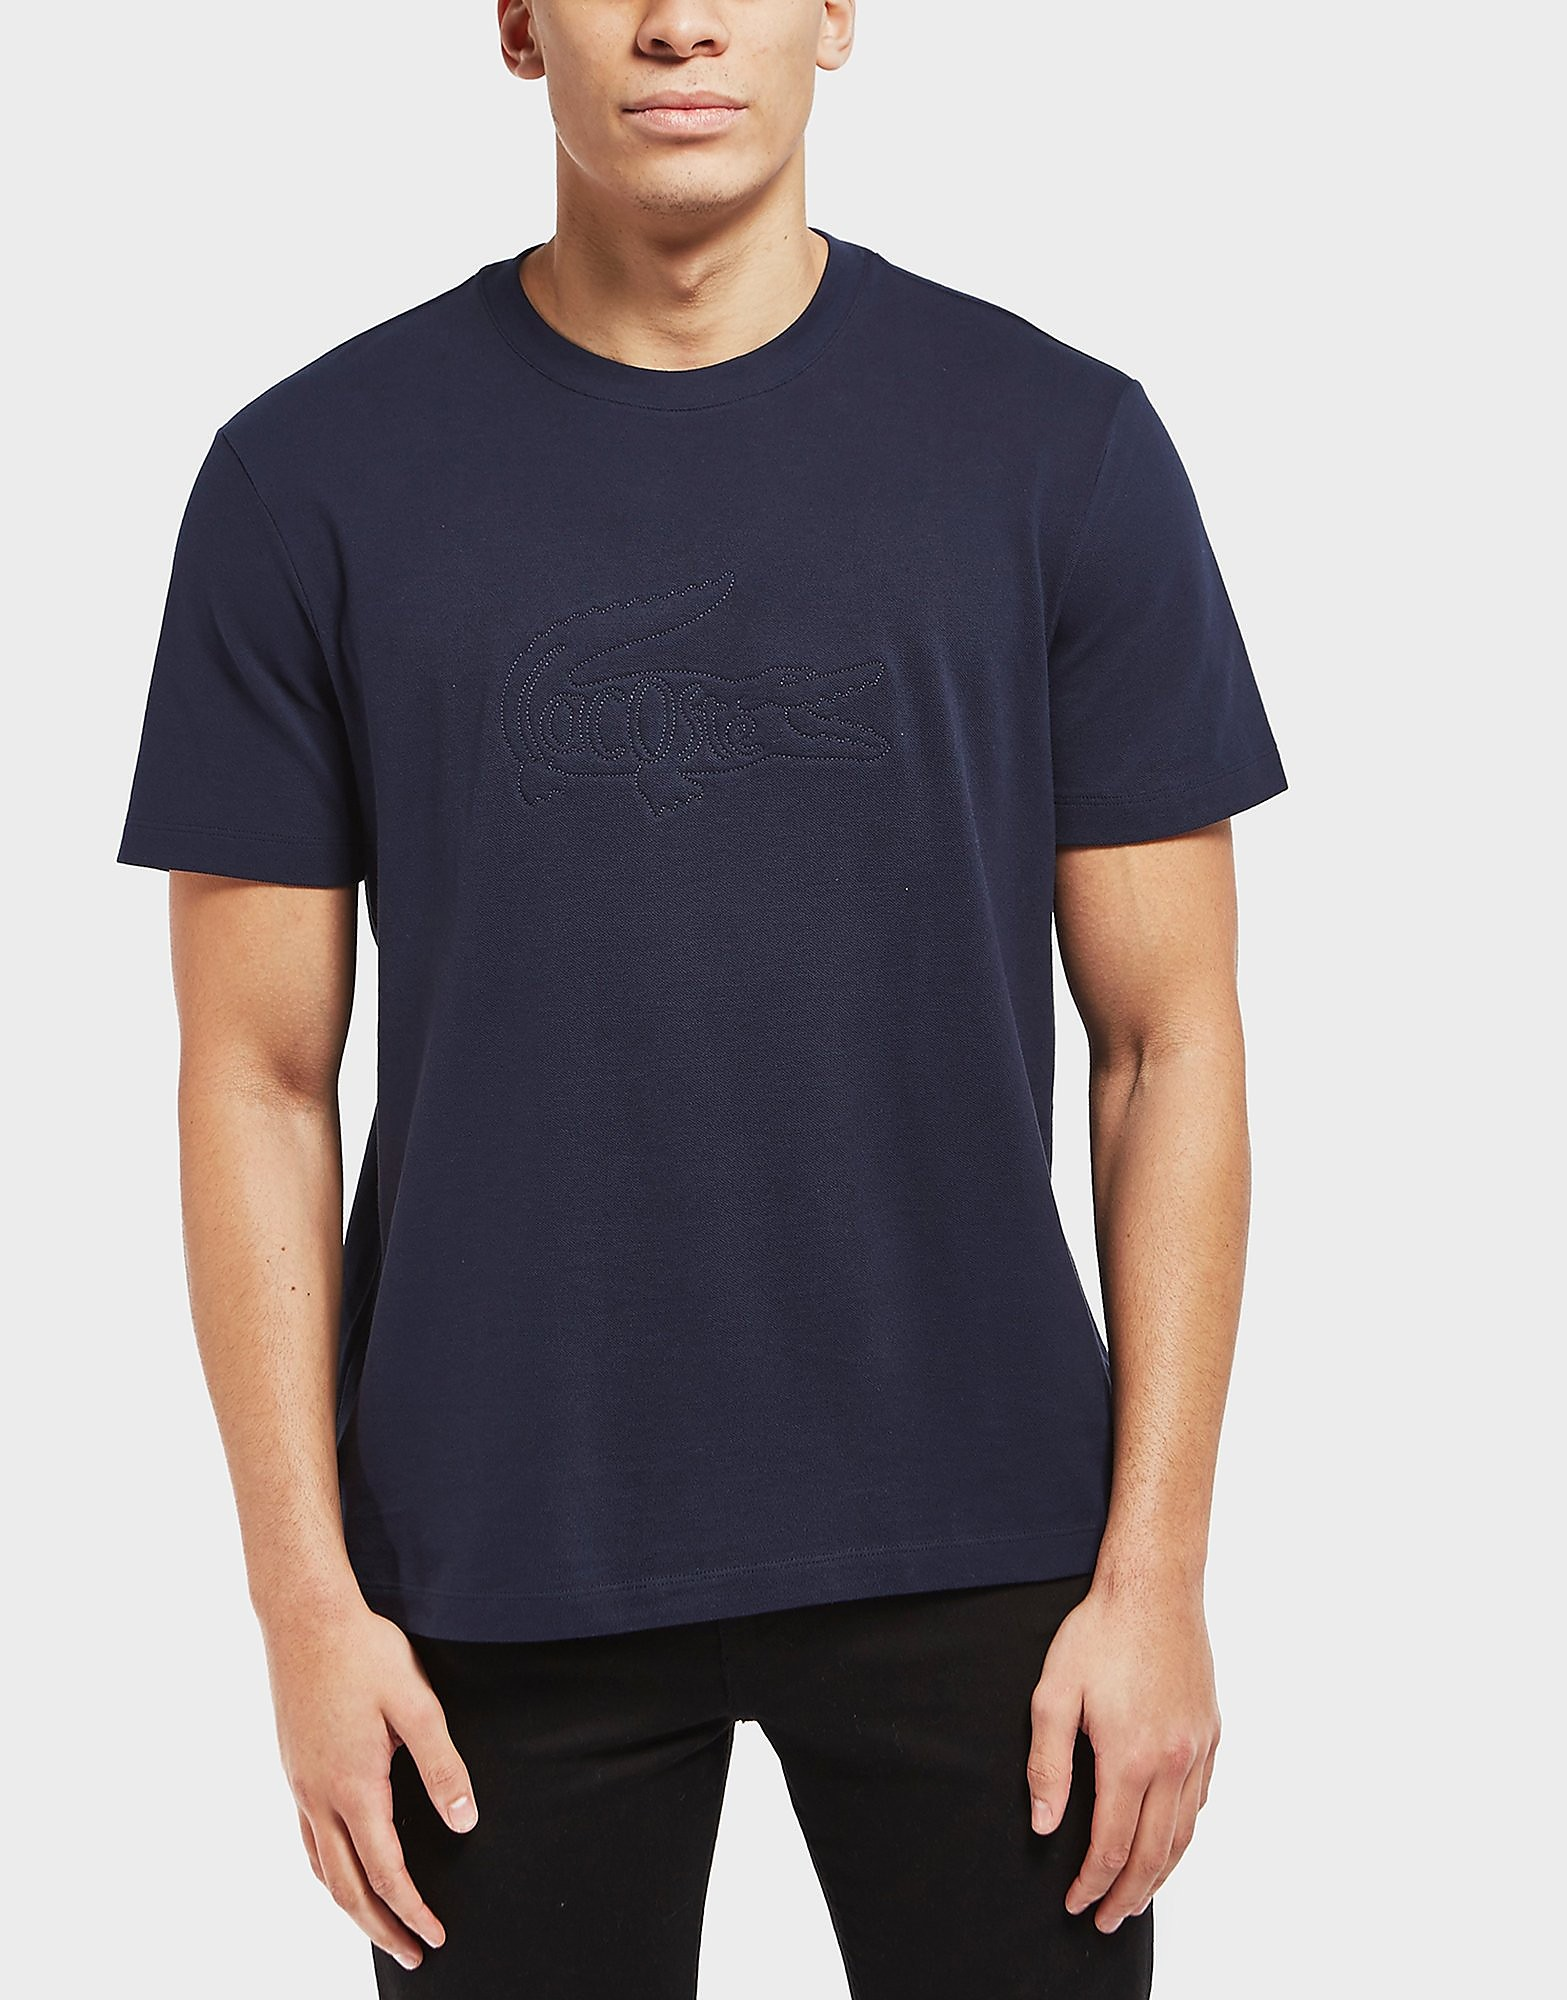 Lacoste Embroidered Logo Pique Short Sleeve T-Shirt